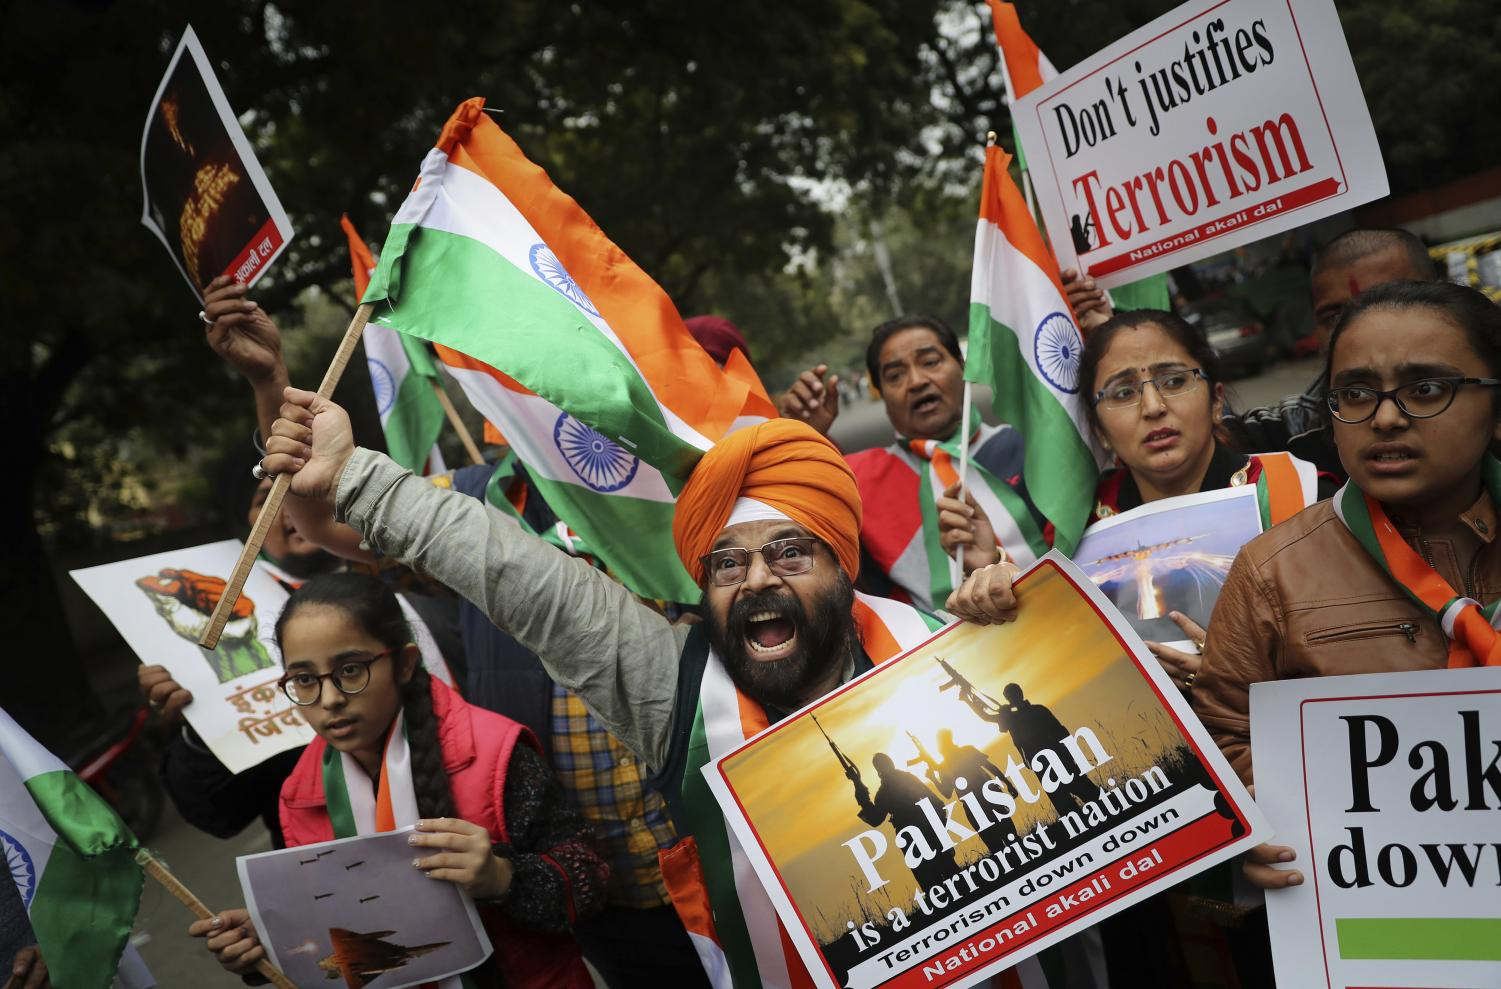 A National Akali Dal leader shouts slogans in support of India and against Pakistan as he celebrates reports of Indian aircrafts bombing Pakistan territory, in New Delhi, India, Tuesday, Feb. 26, 2019.